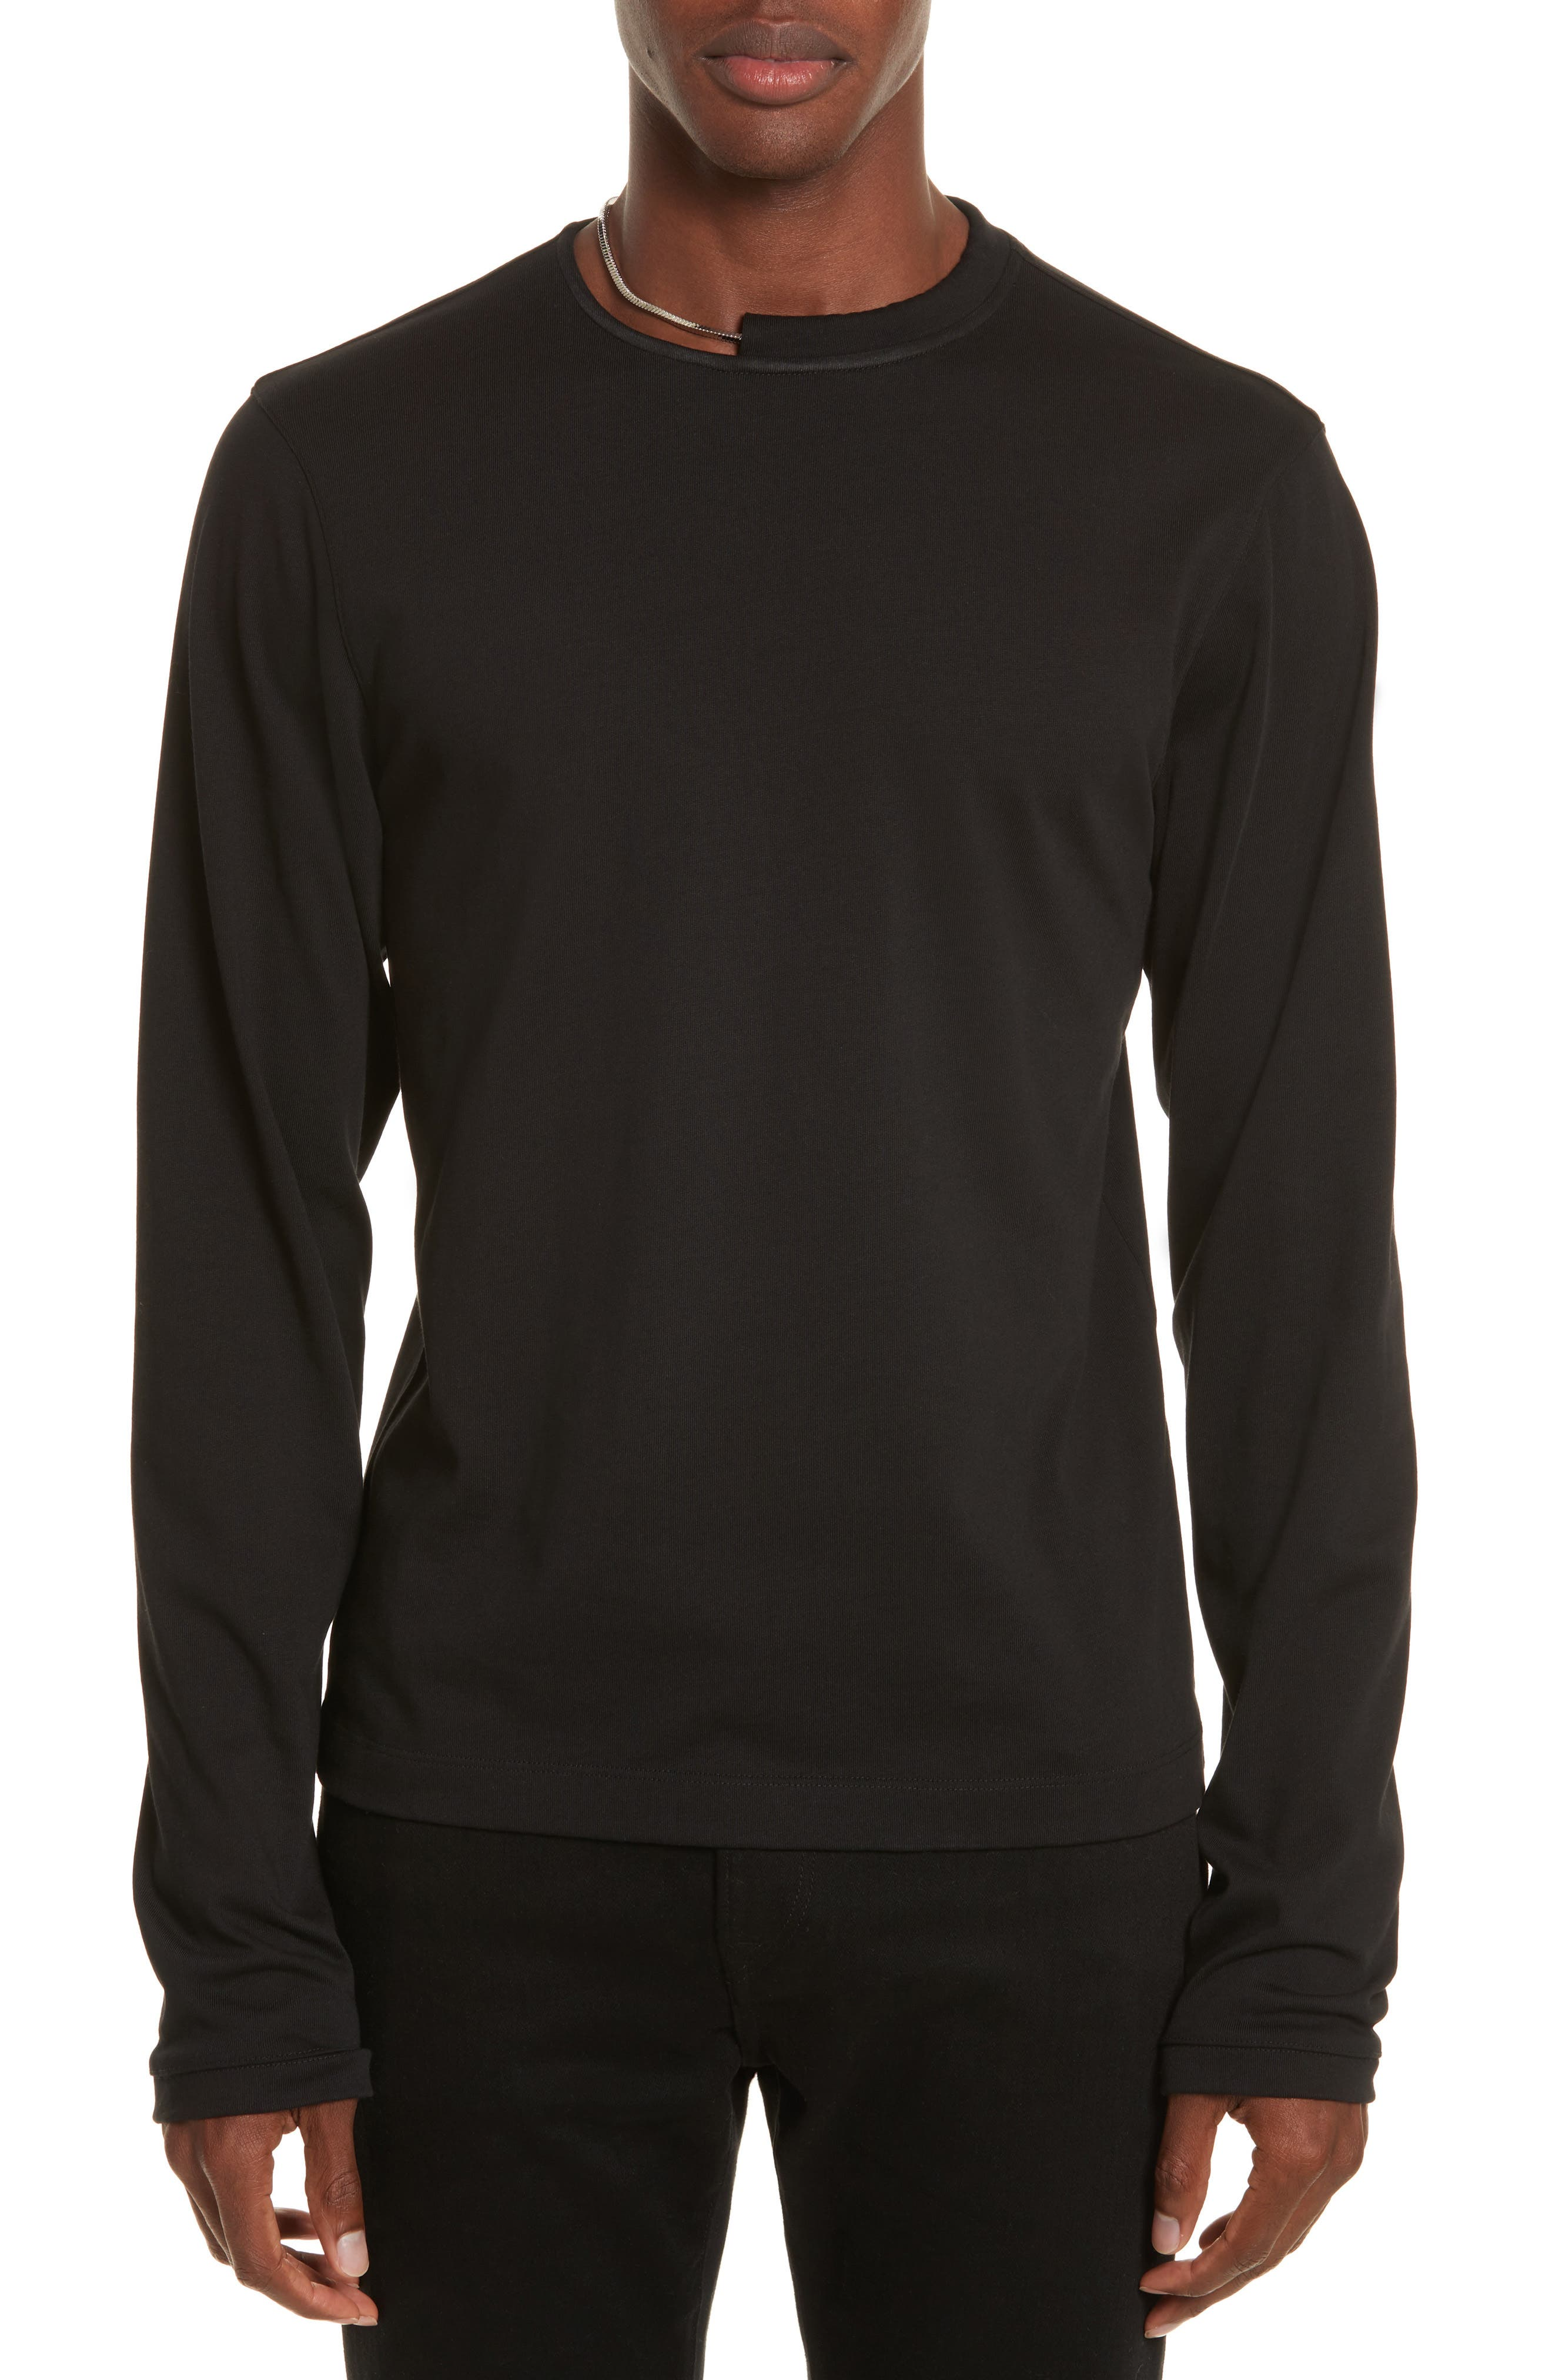 Main Image - Helmut Lang Necklace Crewneck T-Shirt